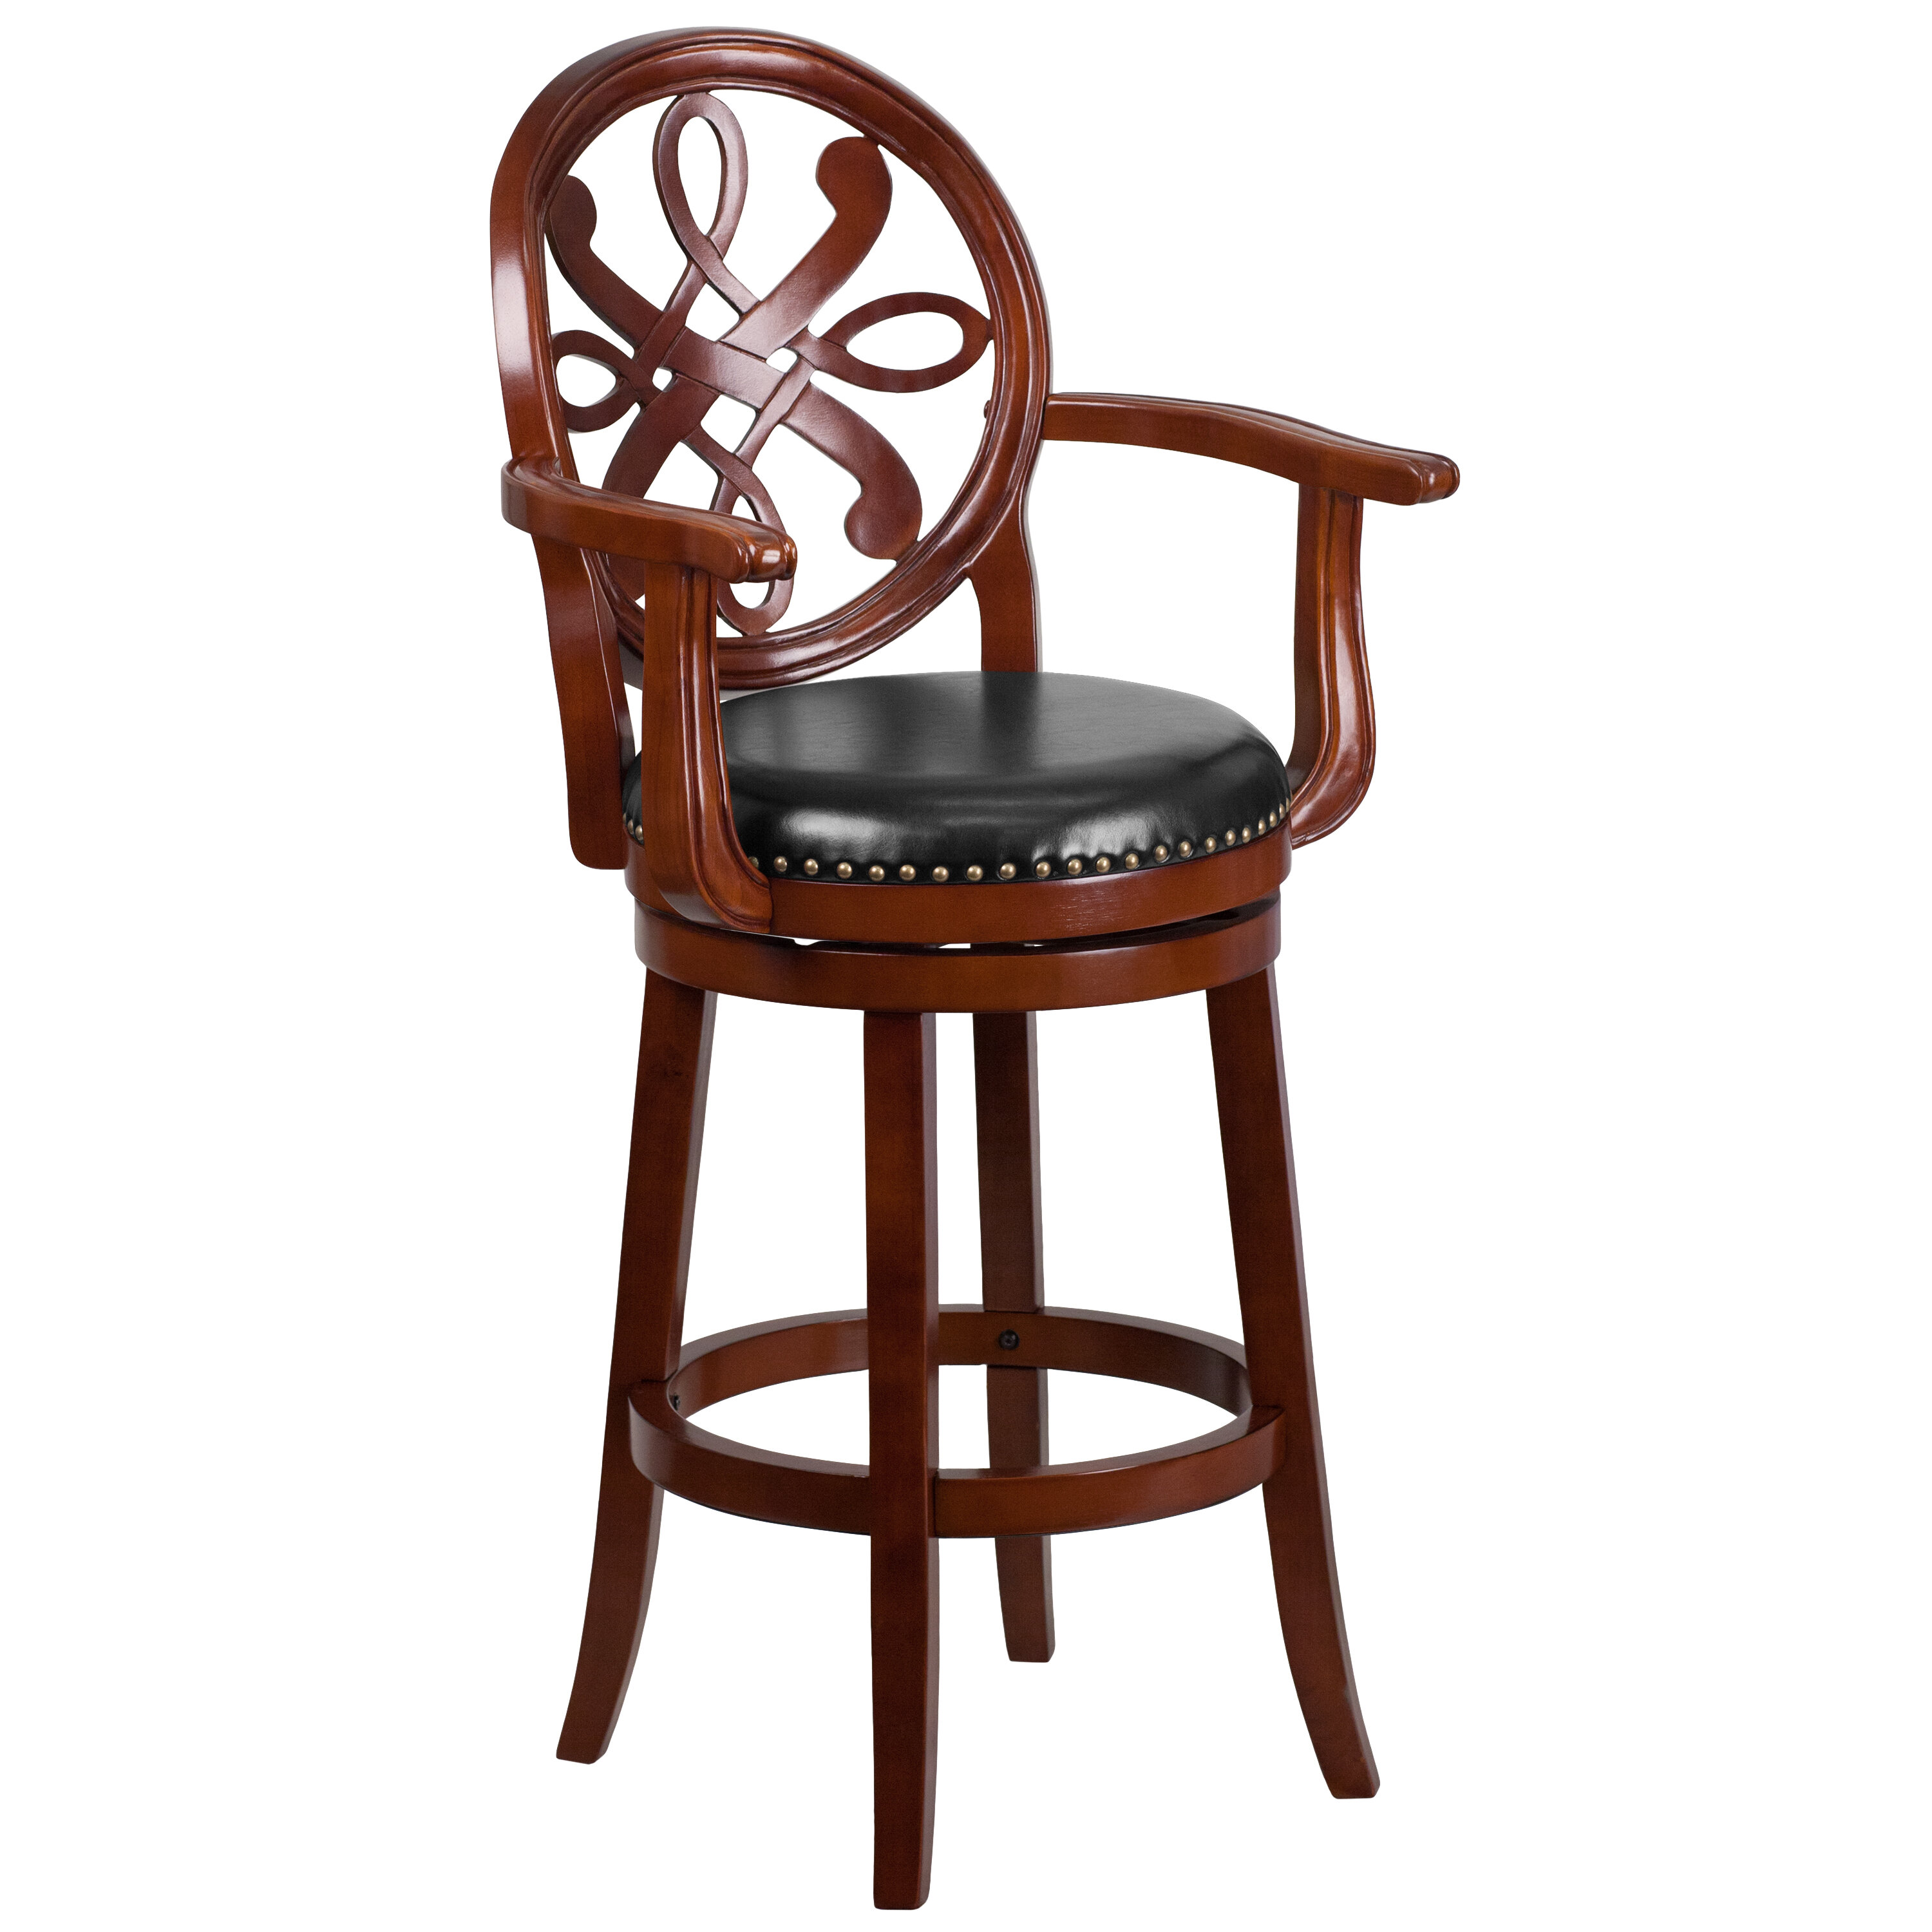 Pleasant Fatum Wood 30 Swivel Bar Stool Onthecornerstone Fun Painted Chair Ideas Images Onthecornerstoneorg